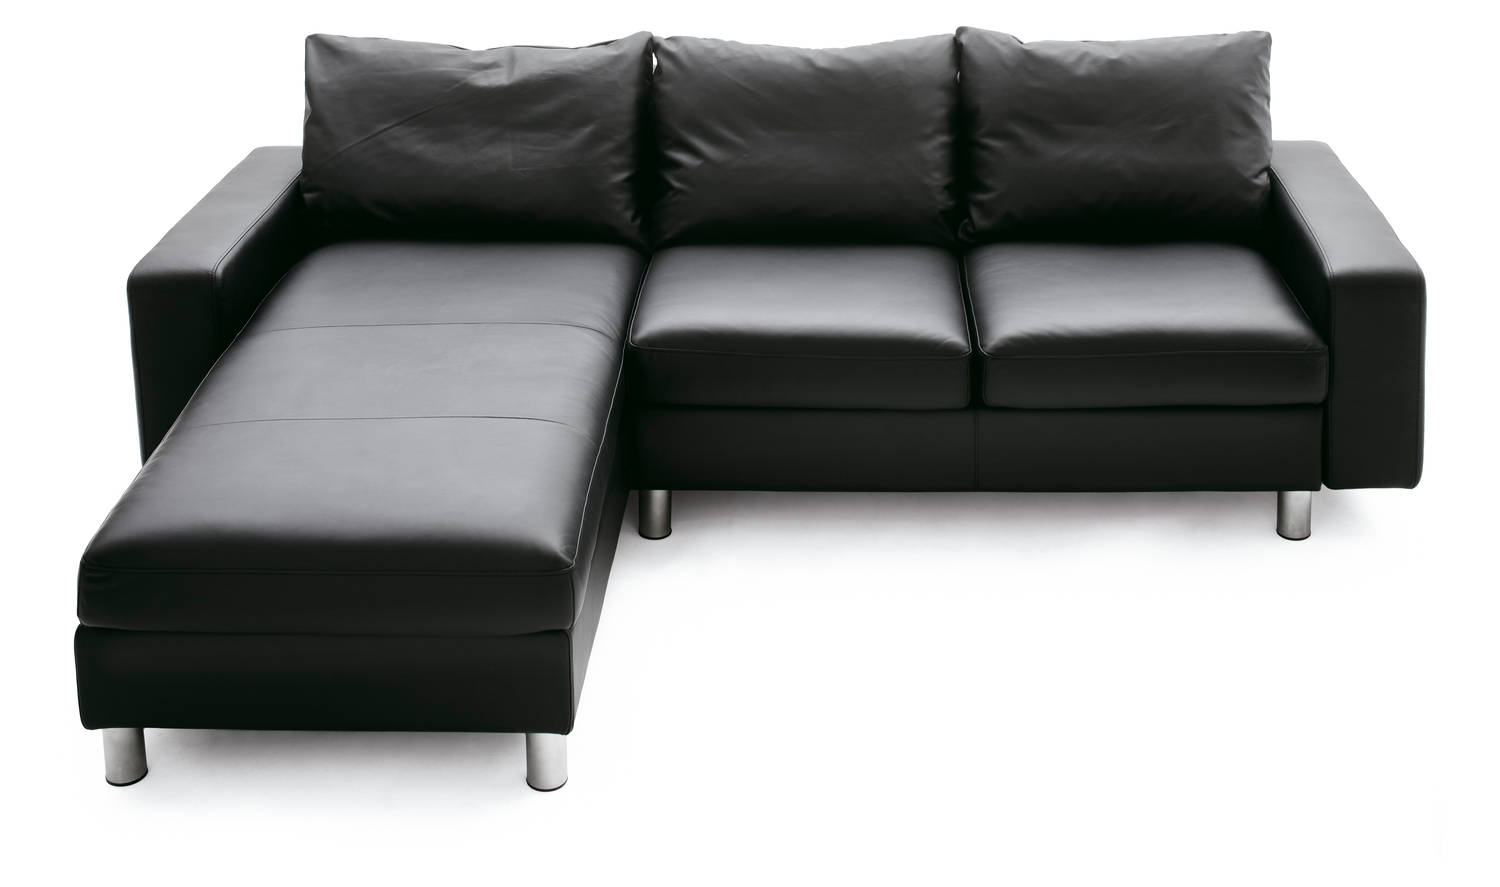 Stressless Sofa Rund Stressless E200 2 Seat Sofa With Long Seat The Century